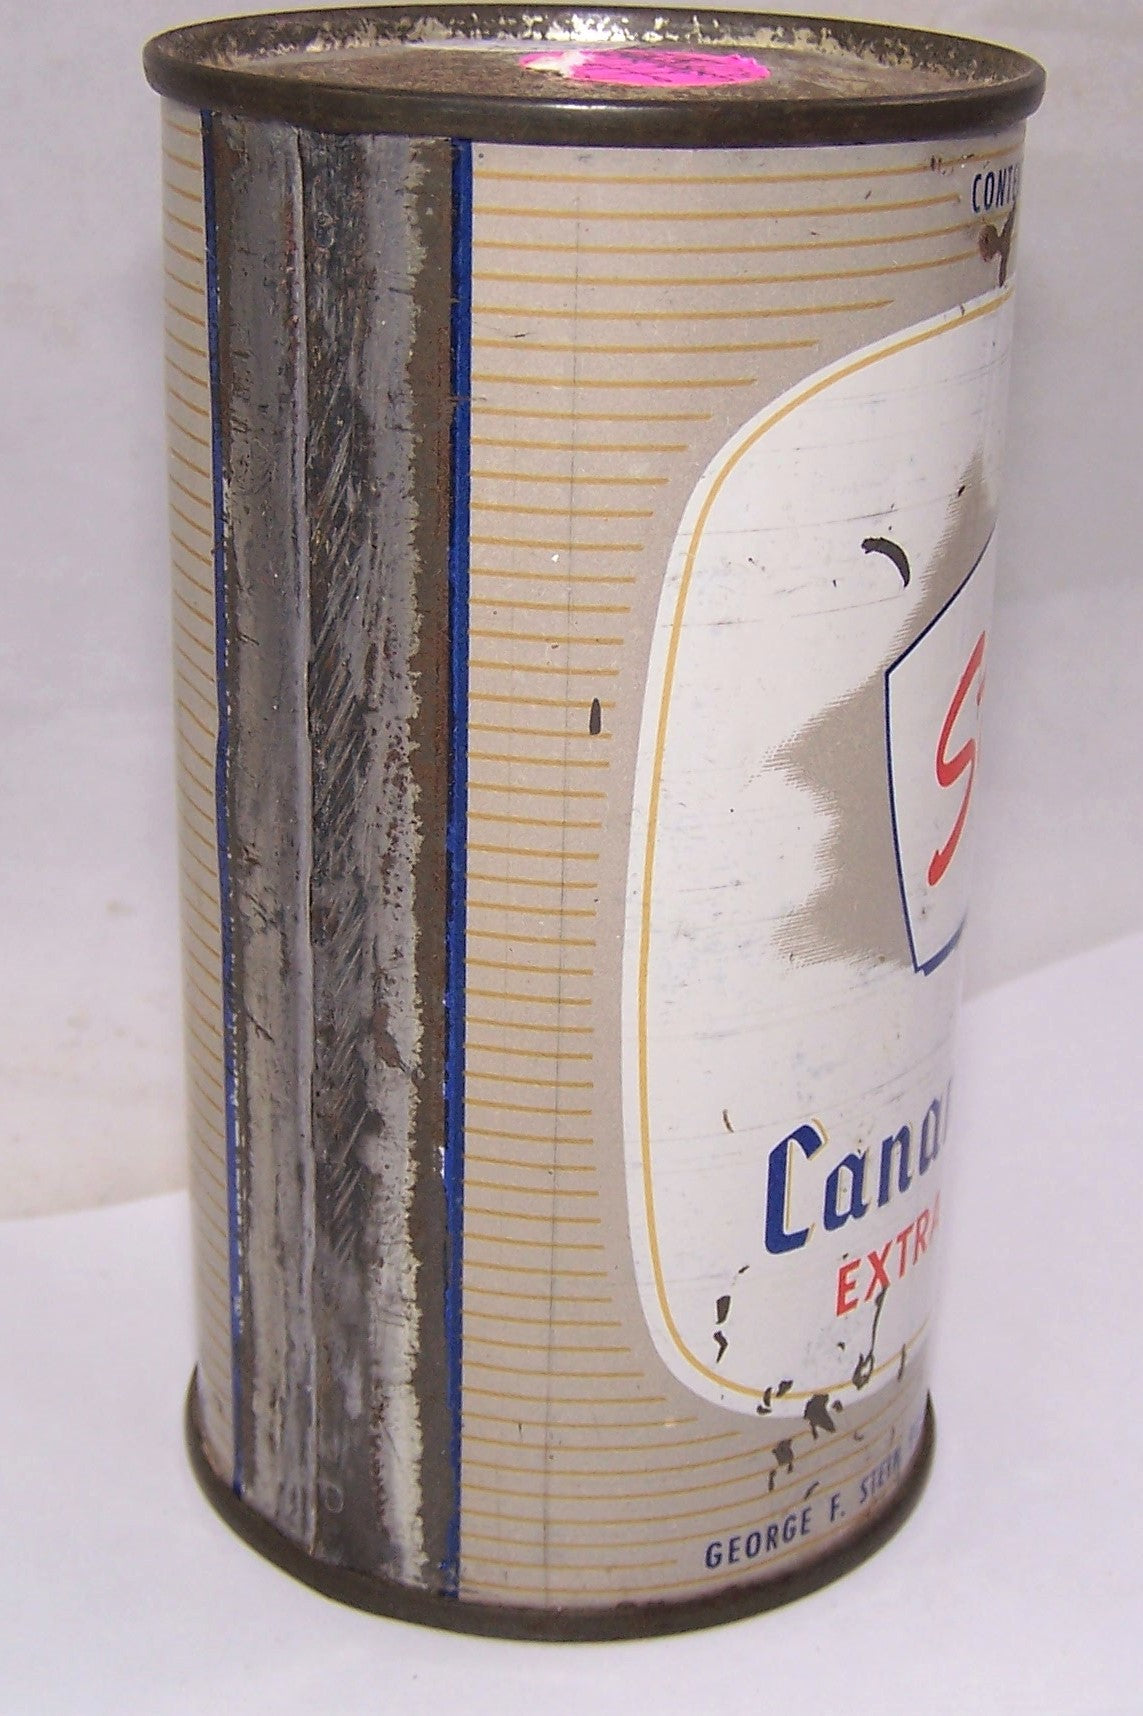 Stein's Canandaigua Flat Top, Grade 1-/2+ All Original.